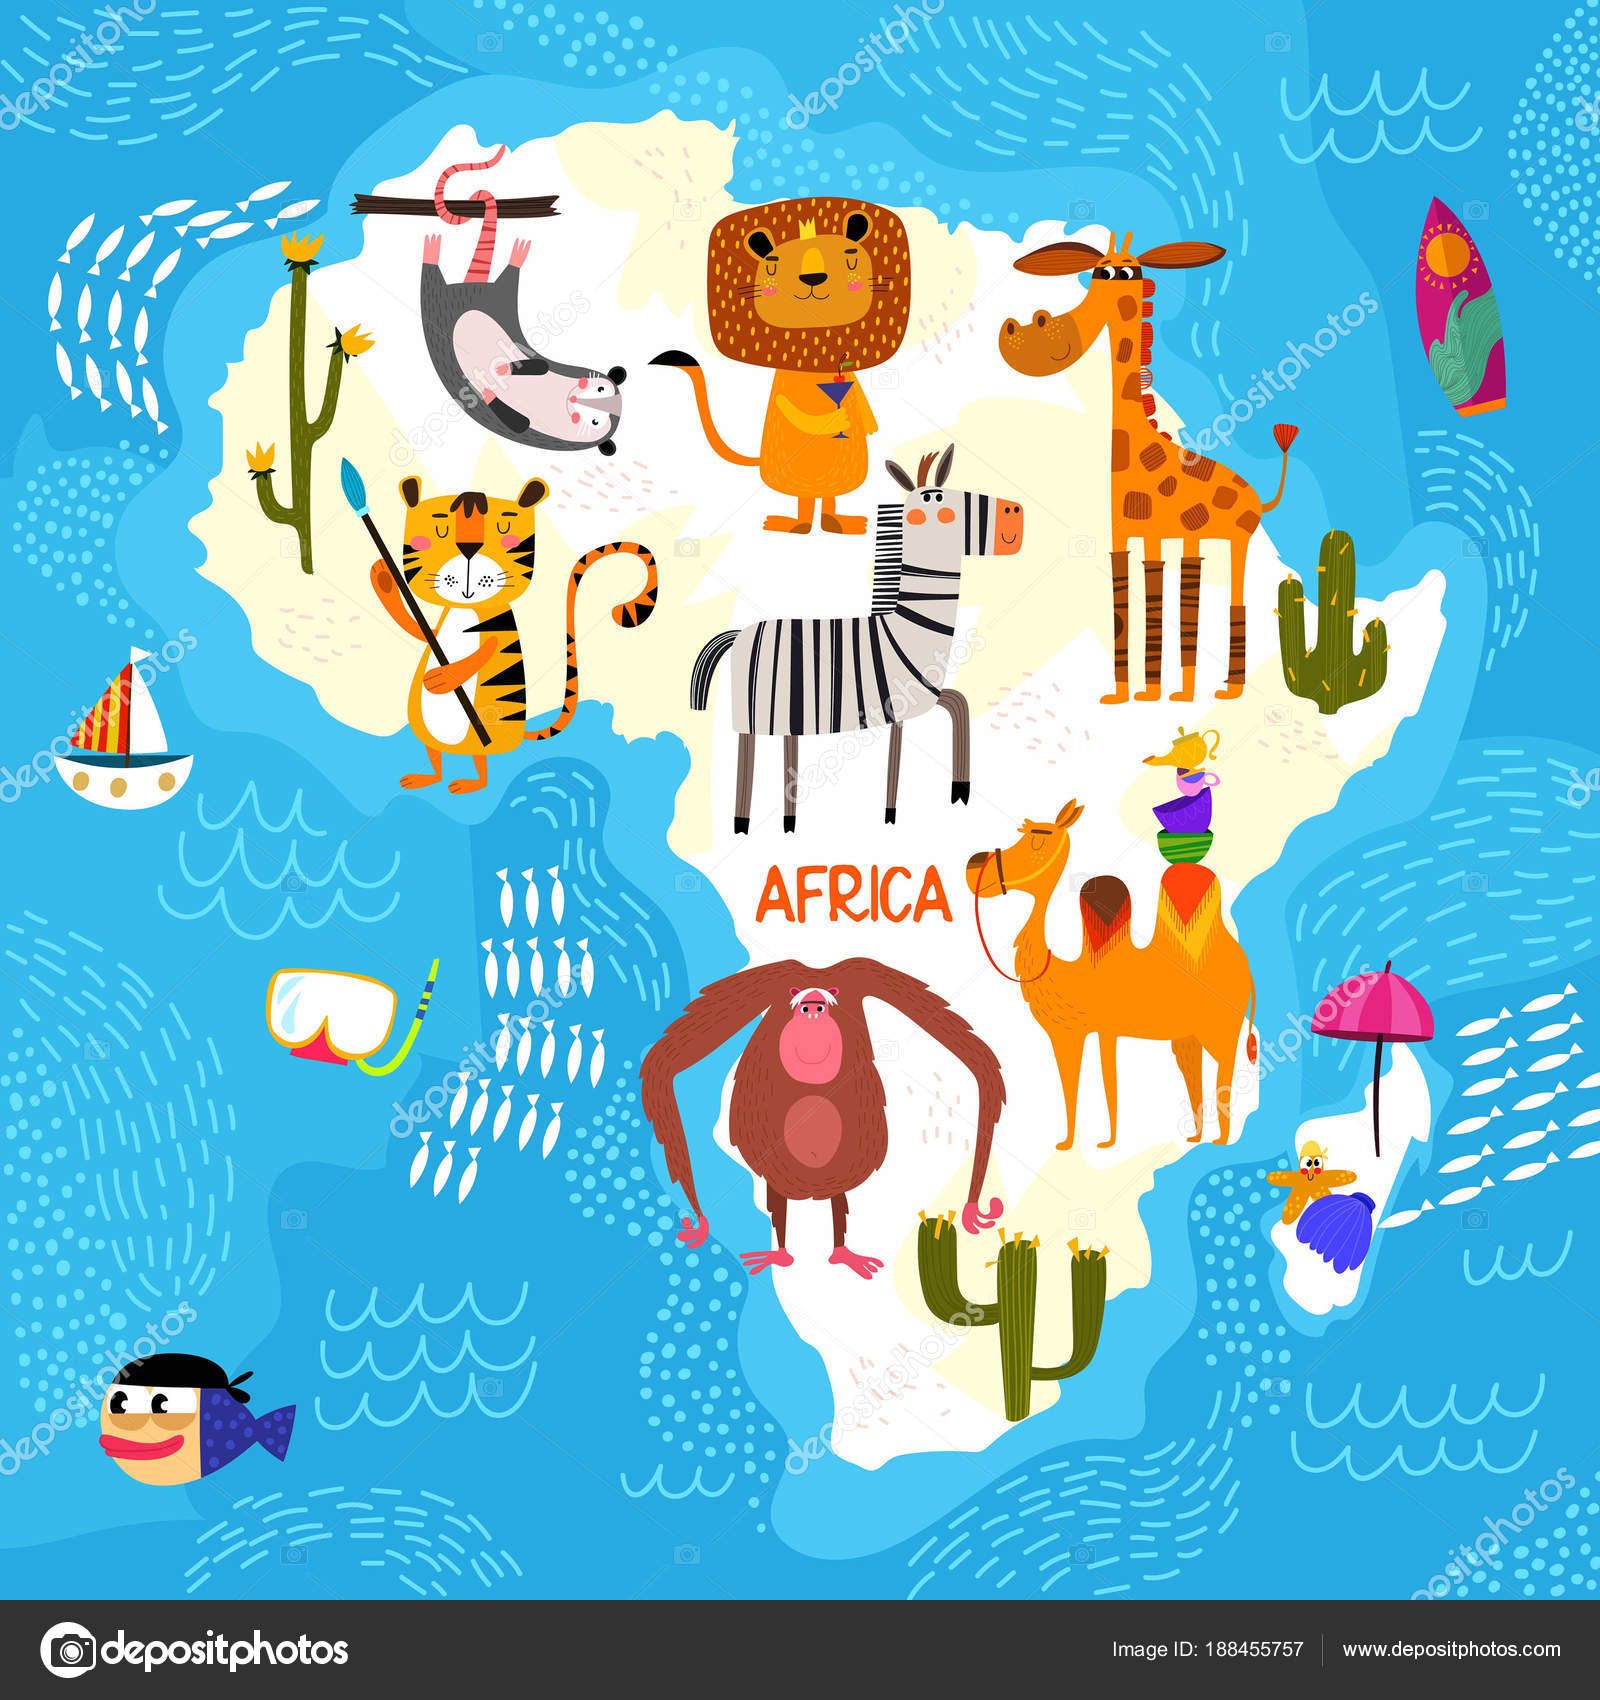 Cartoon world map with traditional animals illustrated map of a cartoon world map with traditional animals illustrated map of a stock vector gumiabroncs Gallery